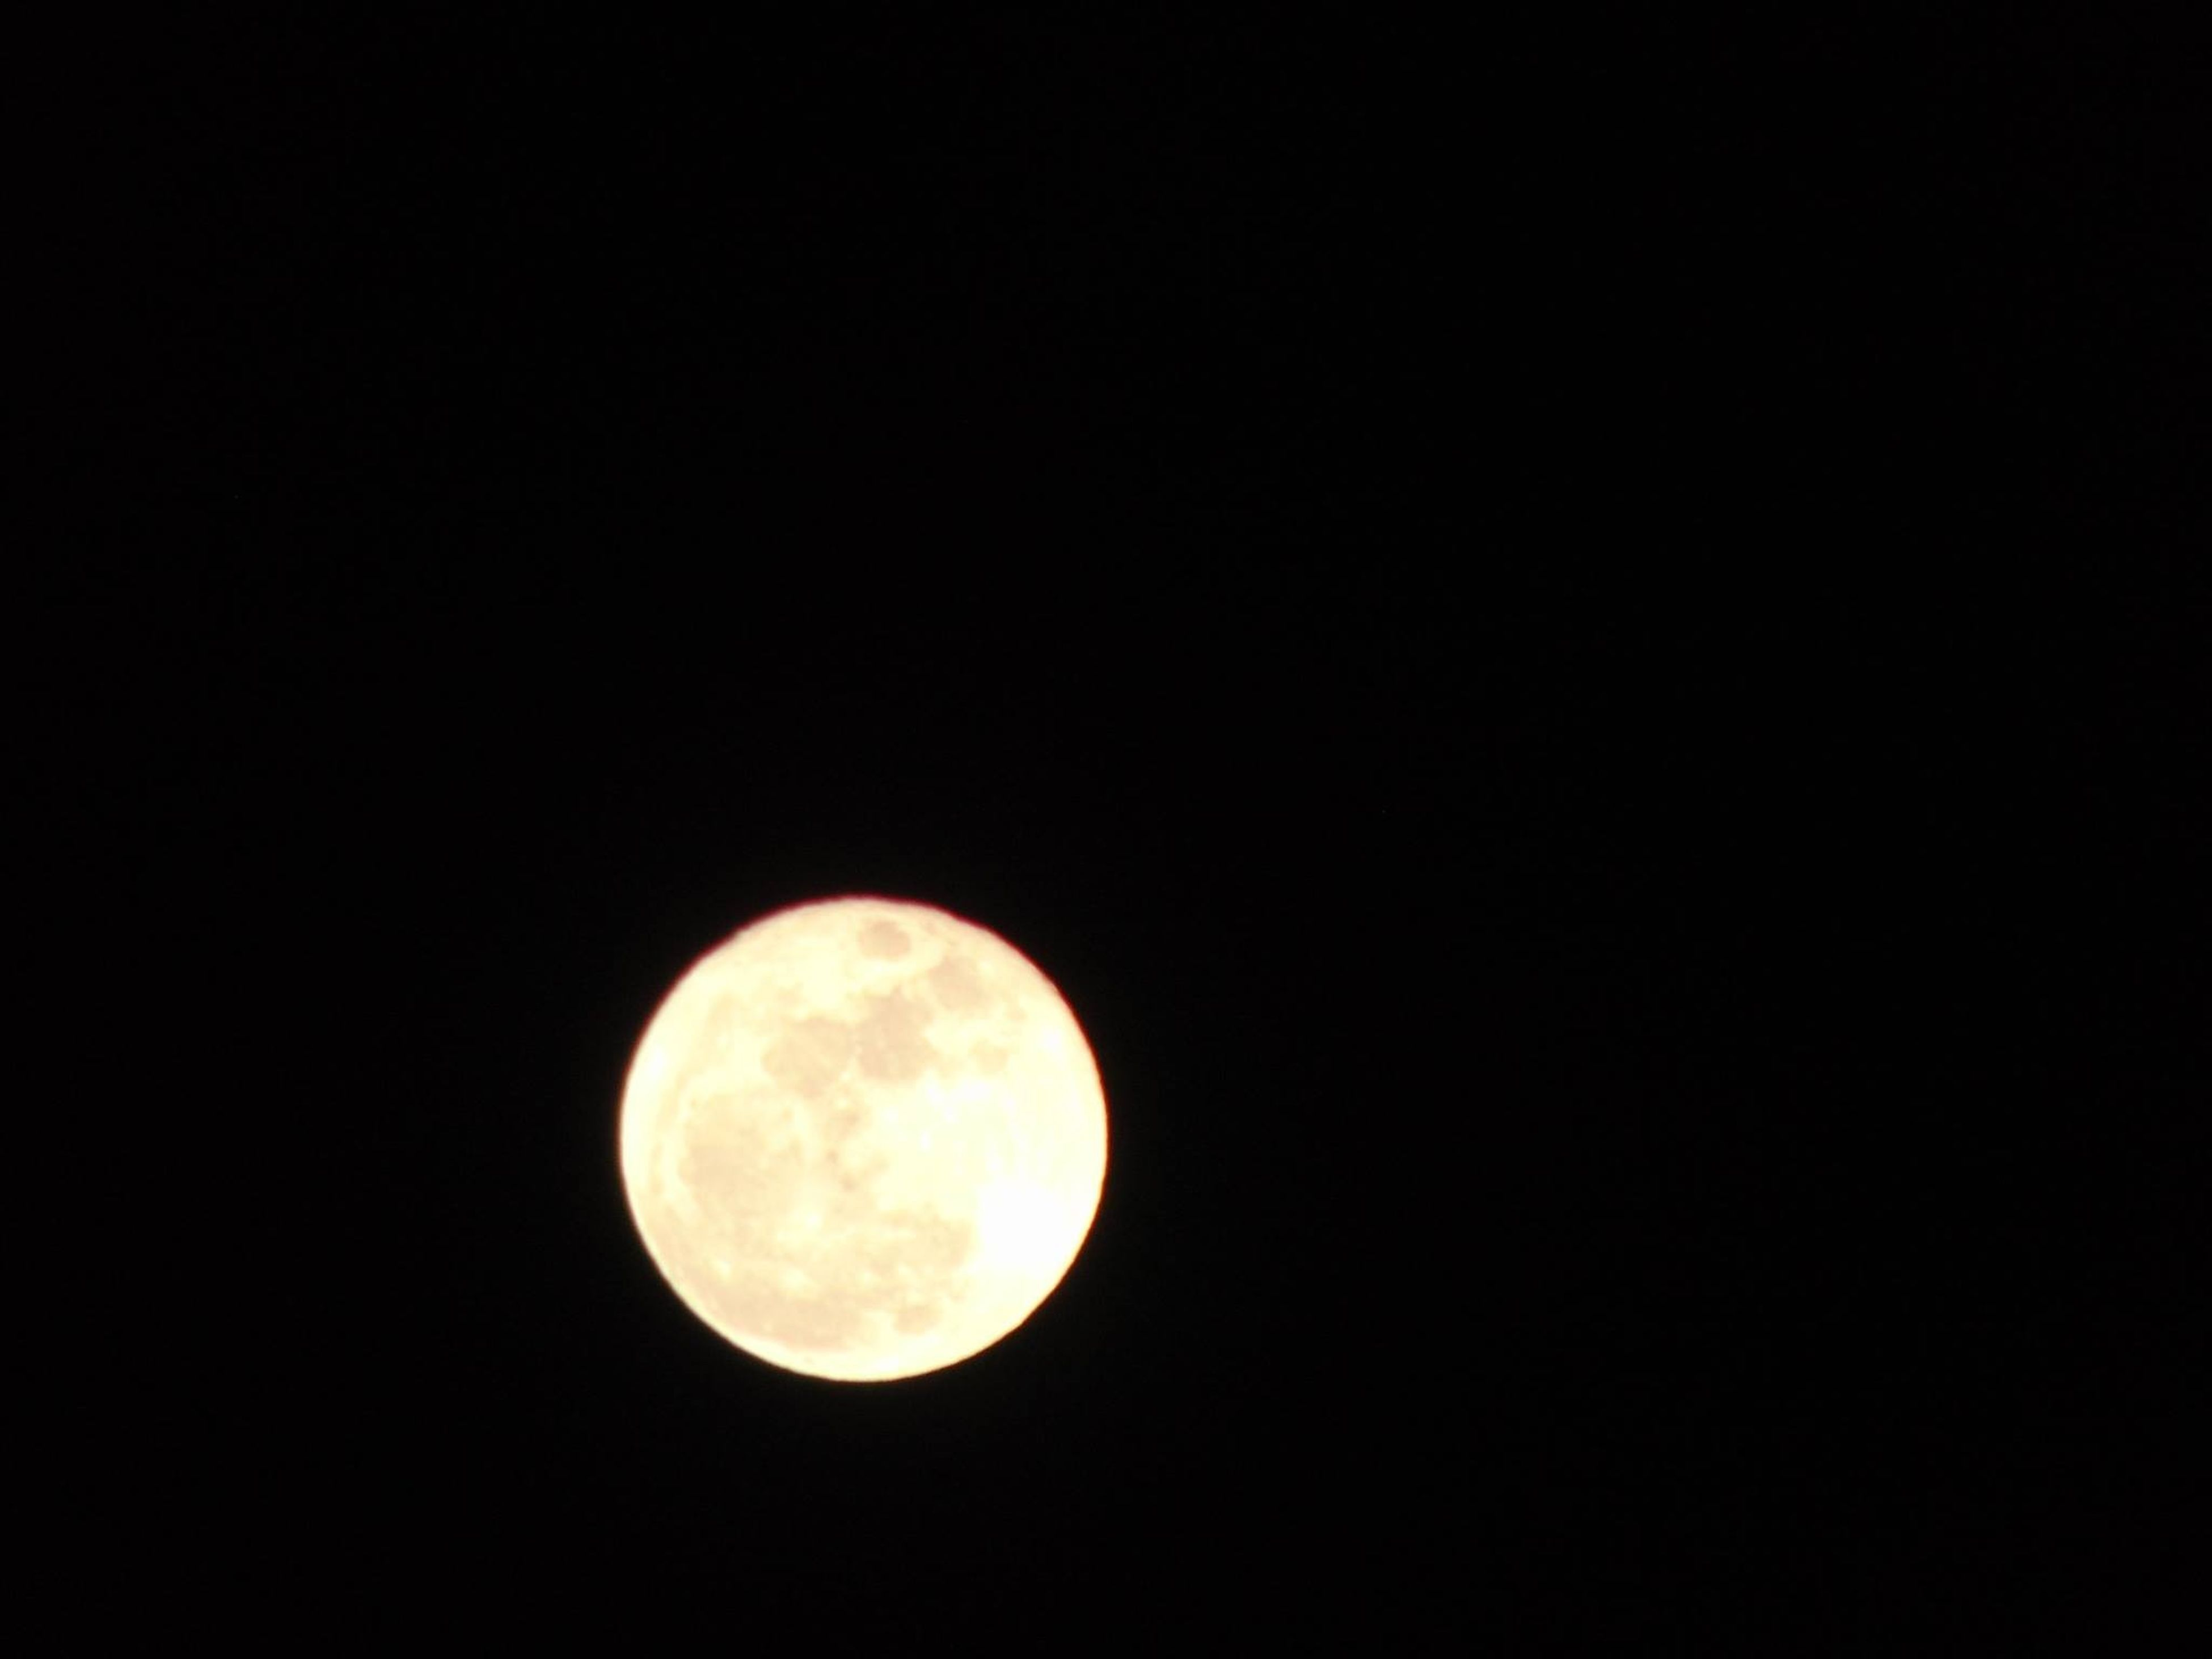 moon, astronomy, full moon, night, planetary moon, moon surface, circle, beauty in nature, dark, sphere, copy space, tranquility, discovery, space exploration, tranquil scene, nature, scenics, exploration, low angle view, majestic